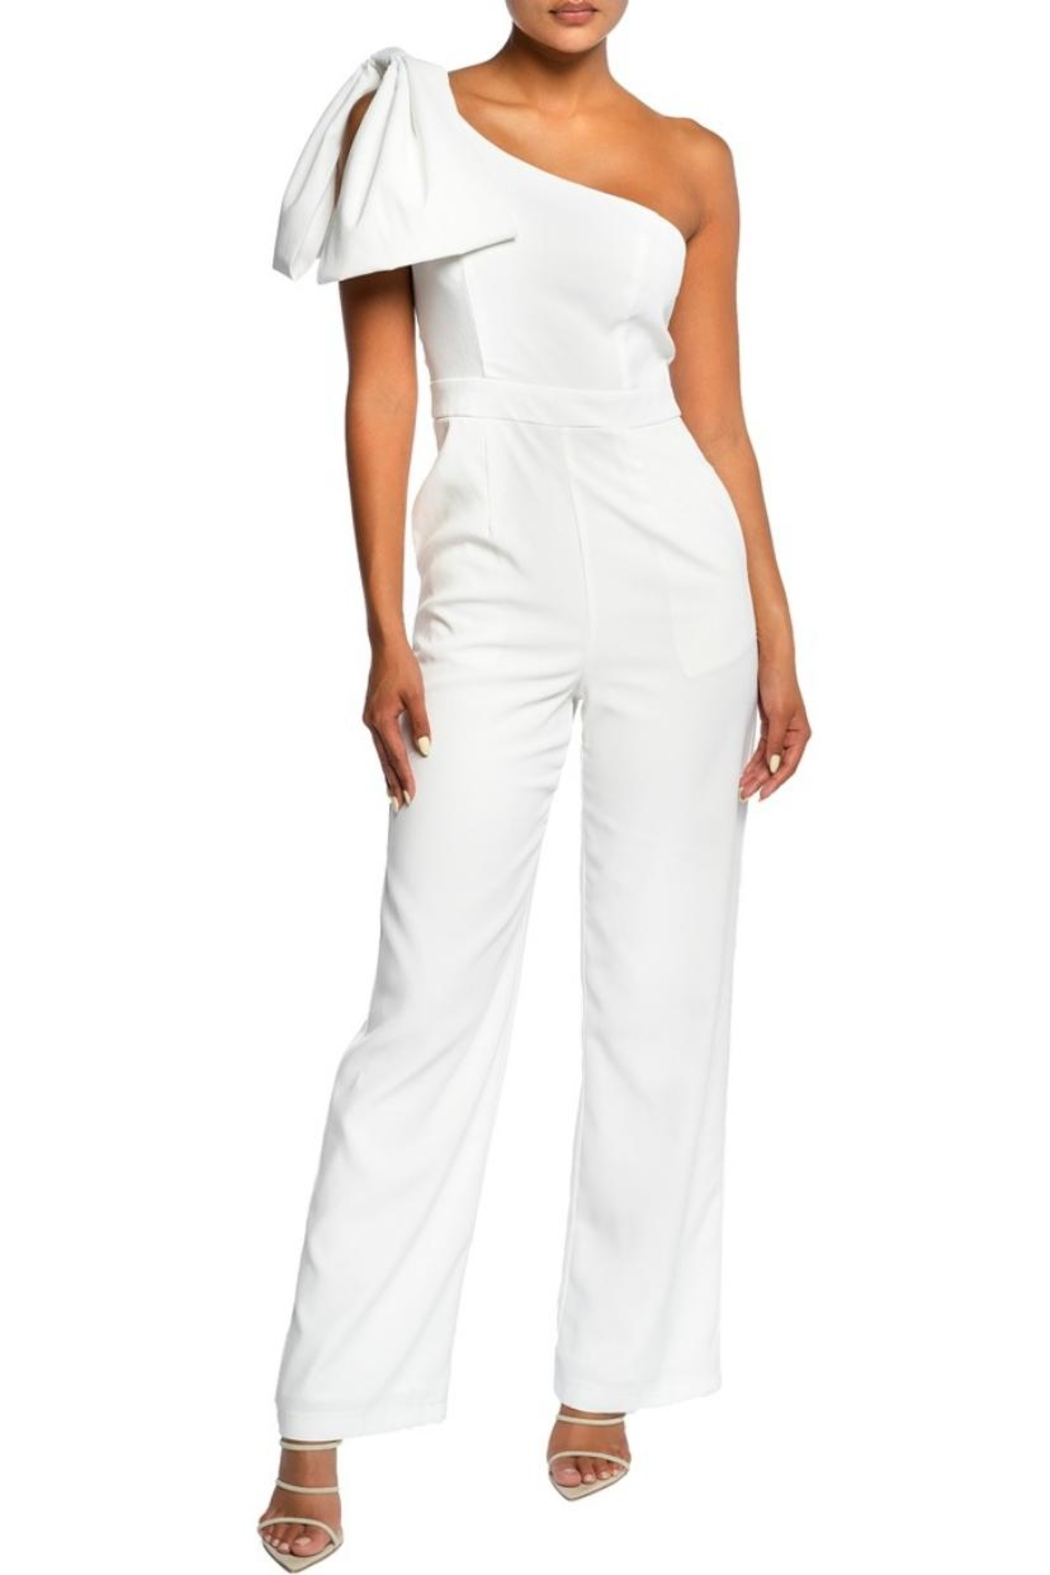 luxxel Bow Accent Jumpsuit - Front Cropped Image